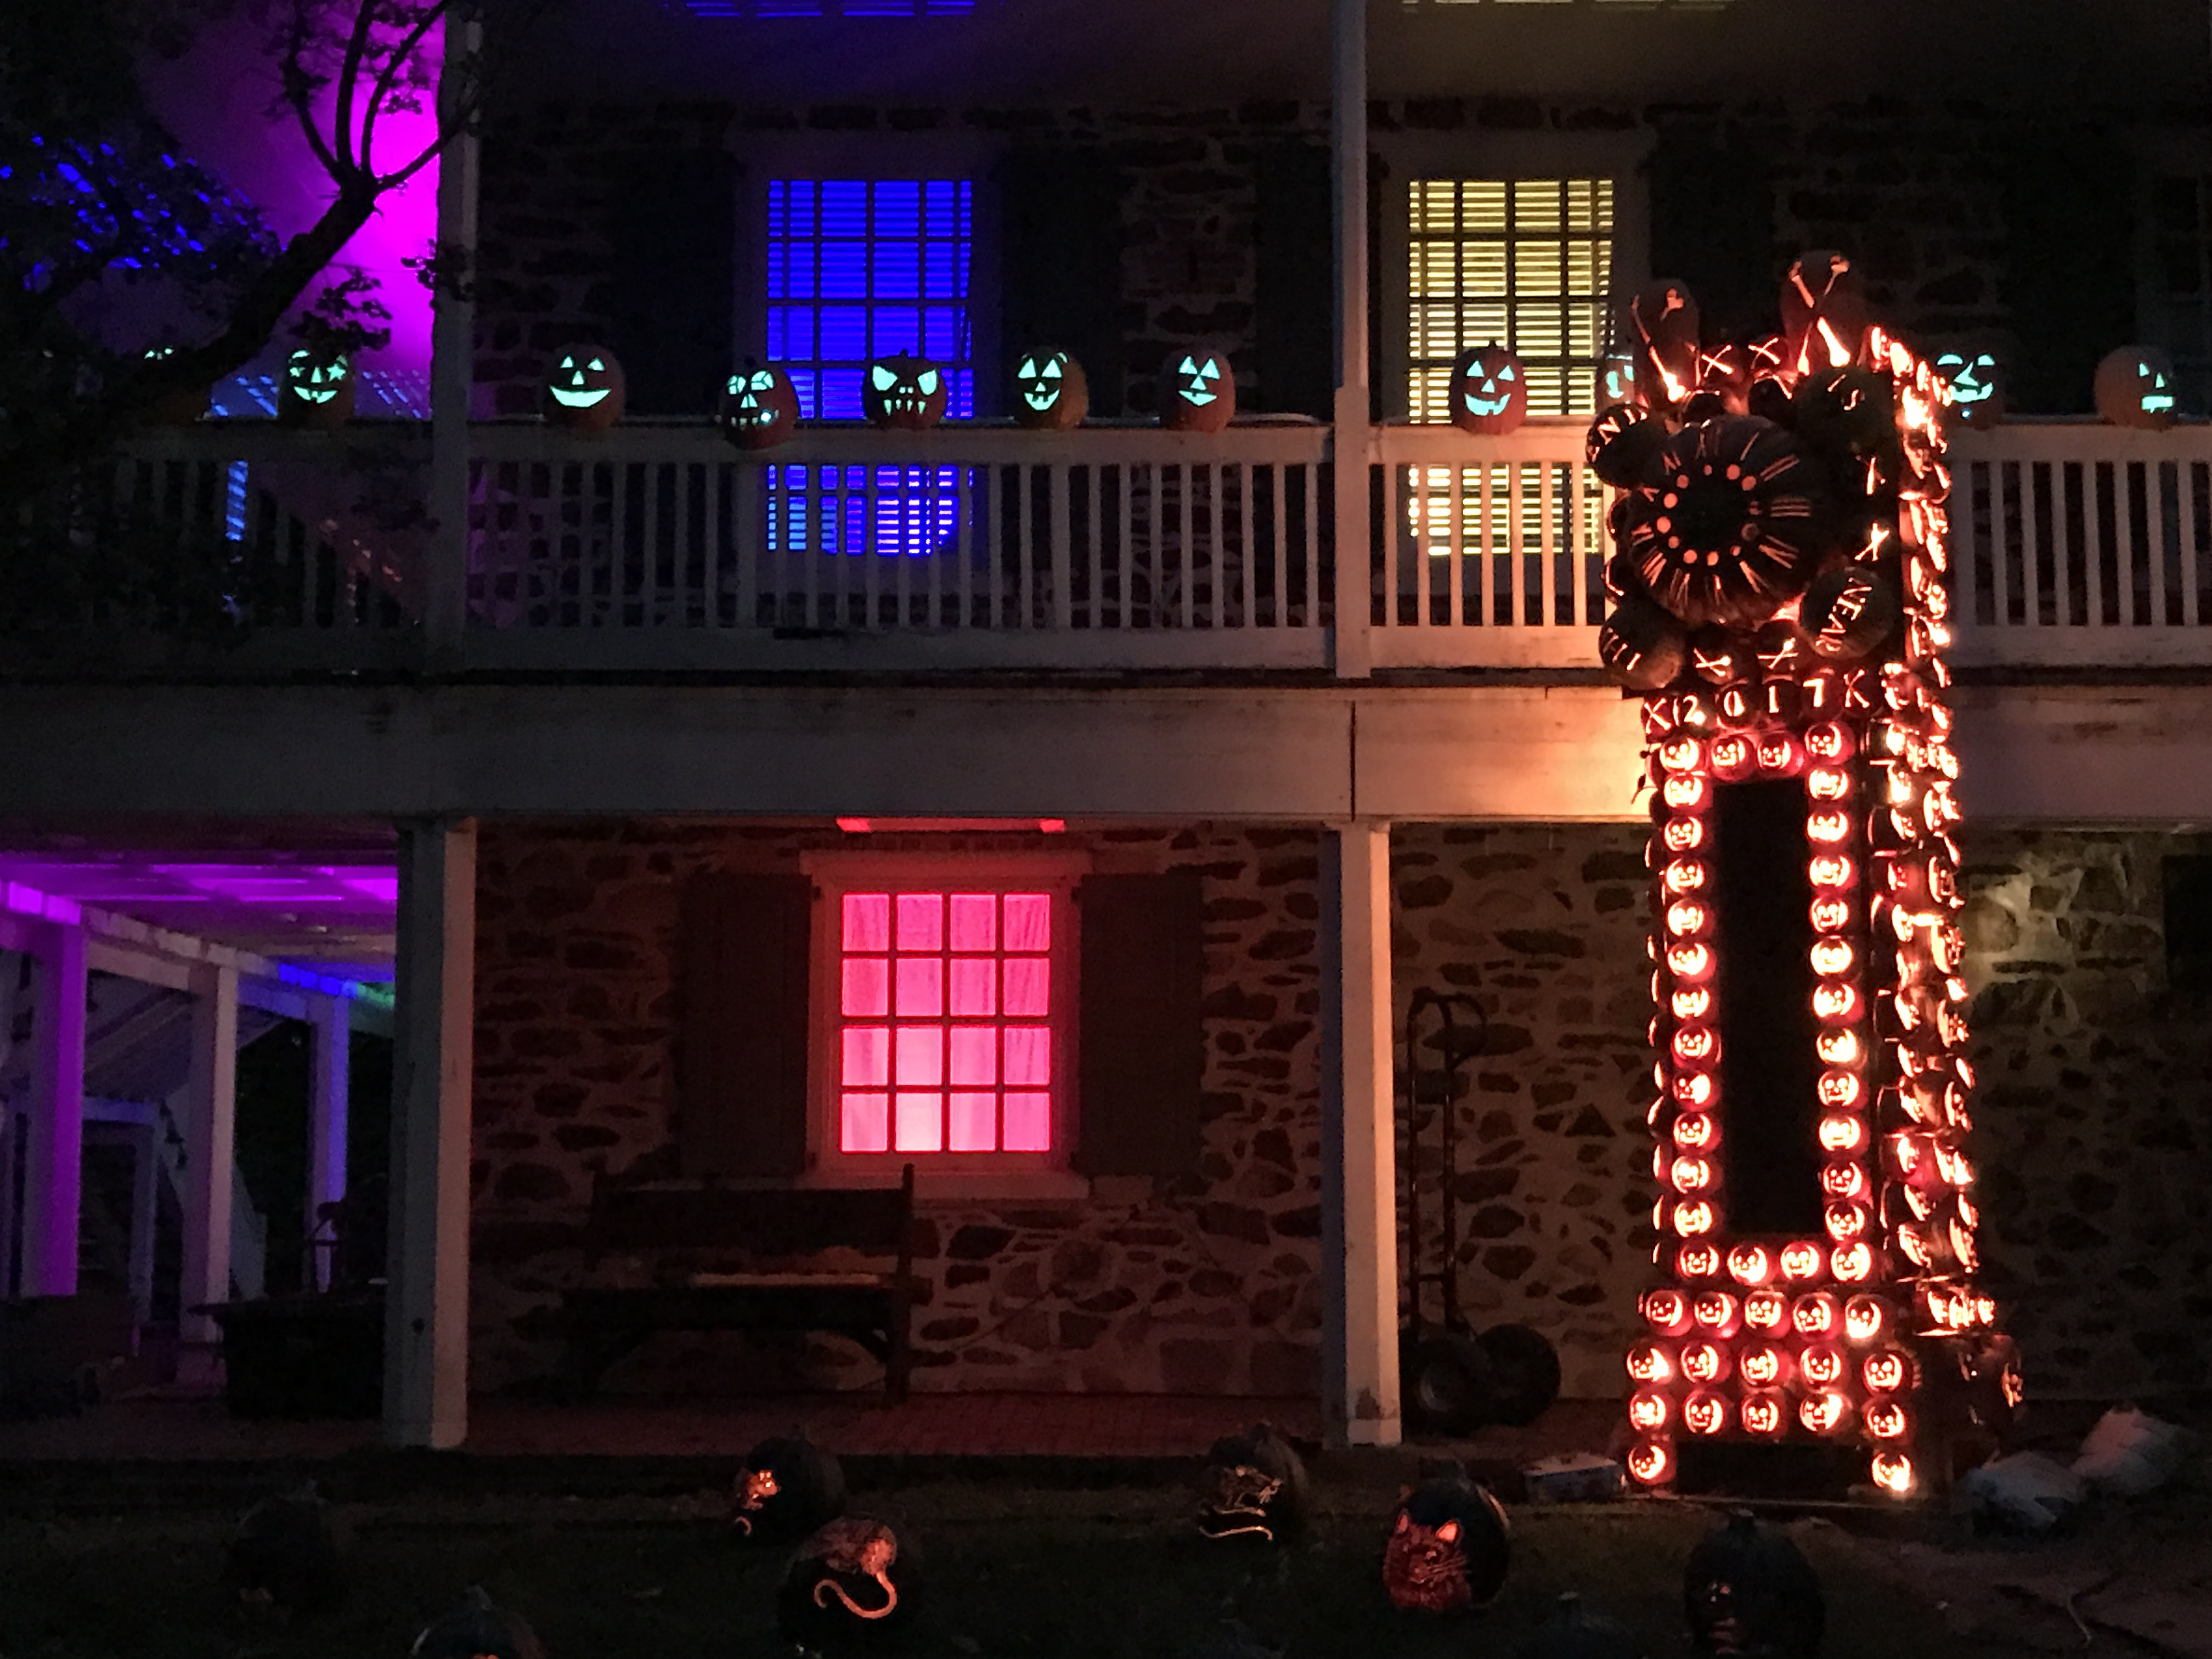 Programming Pumpkins For A Halloween Extravaganza How Do Christmas Lights Work We Some In The Historic Houses And Thats All Done With Museum Curator Who Stands Us Makes Sure Dont Anything That Would